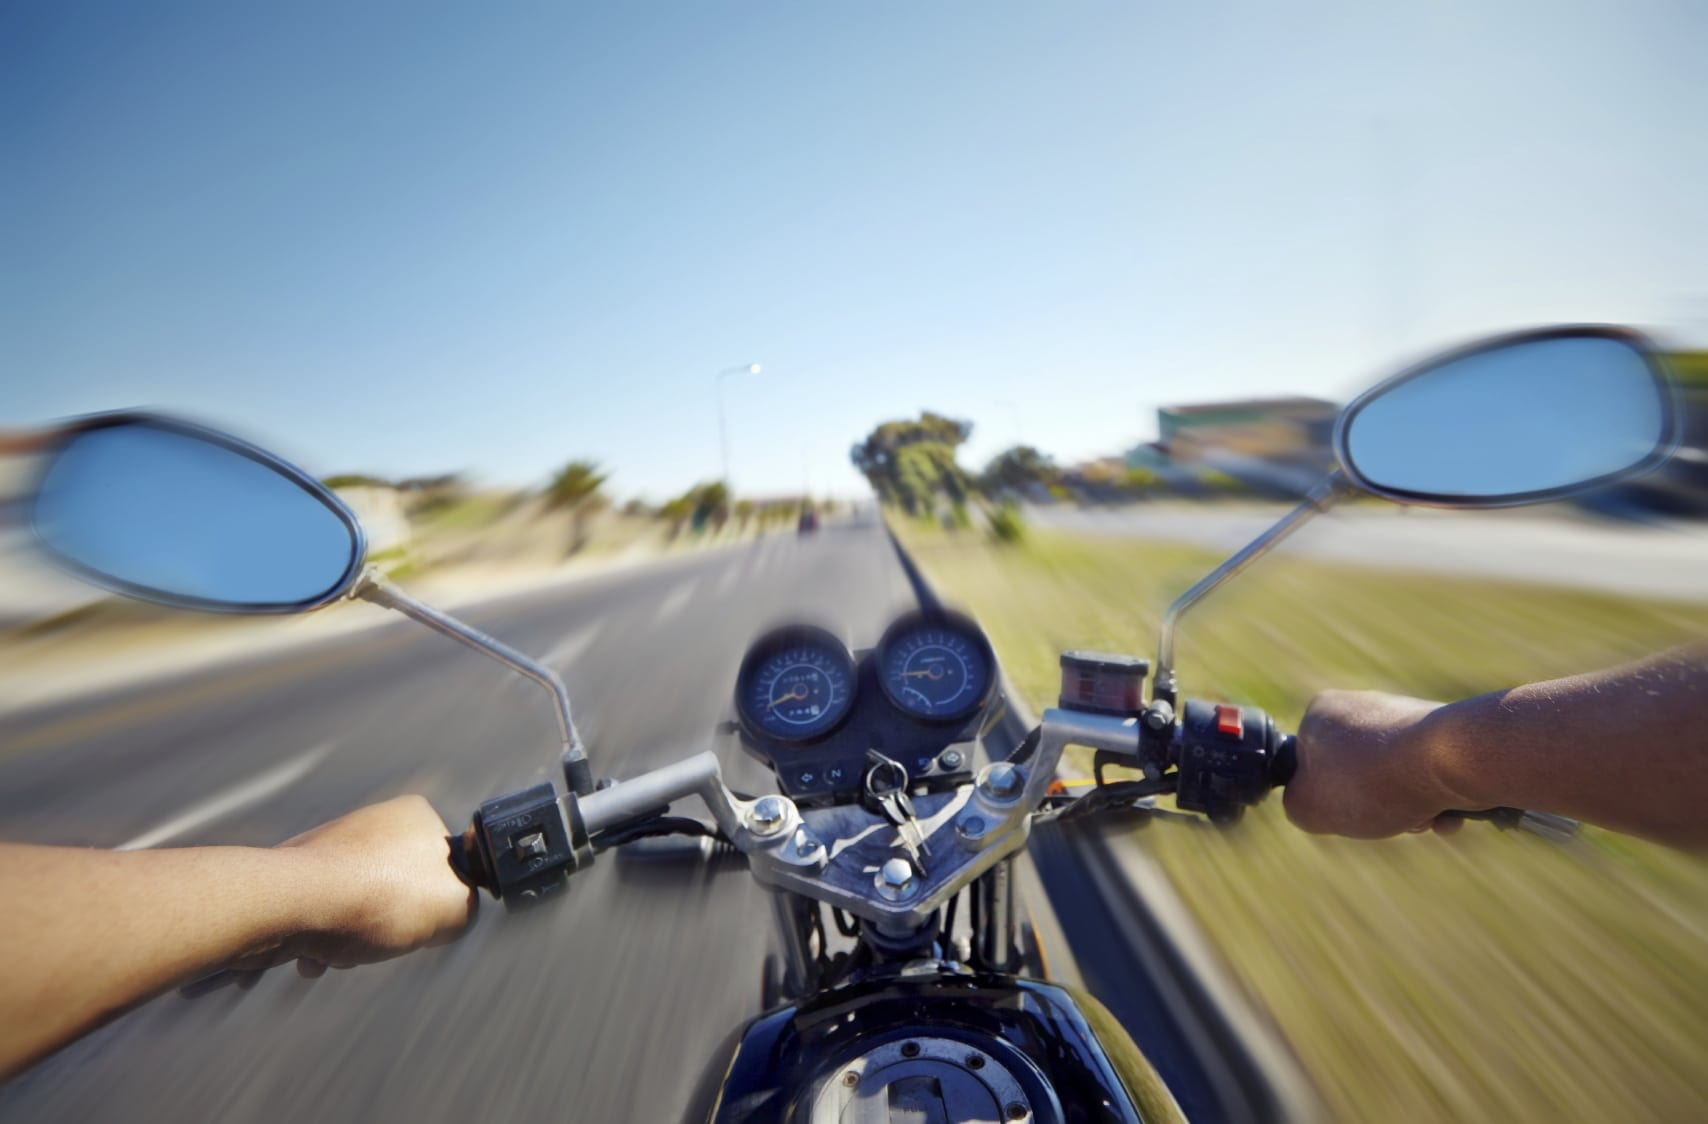 Motorcyclist Riding Motorcycle During The Day Stock Photo